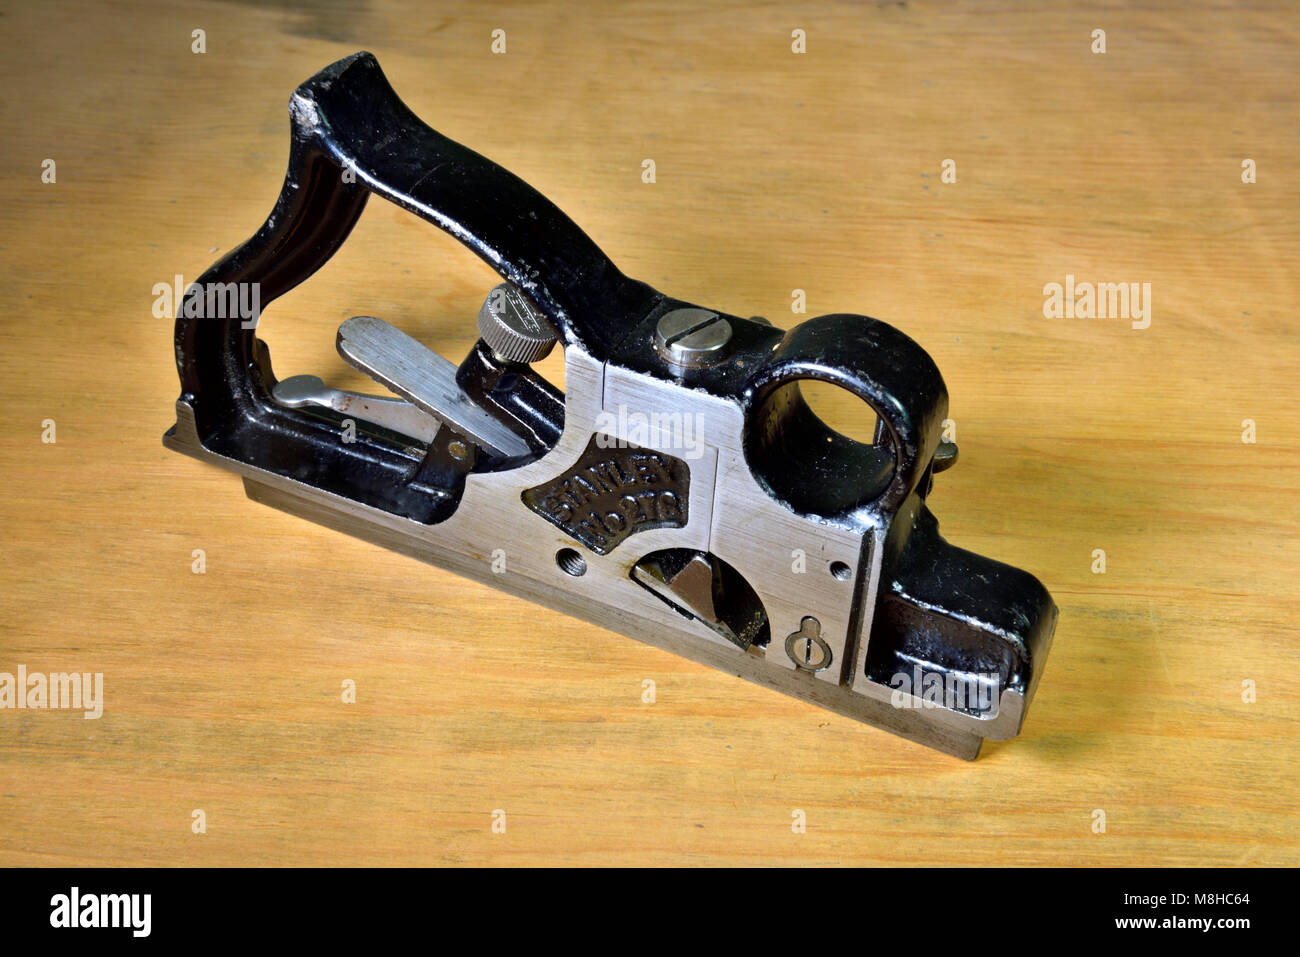 Stanley 278 rabbet and fillitster woodworking plane, made from 1915 to 1943 - Stock Image